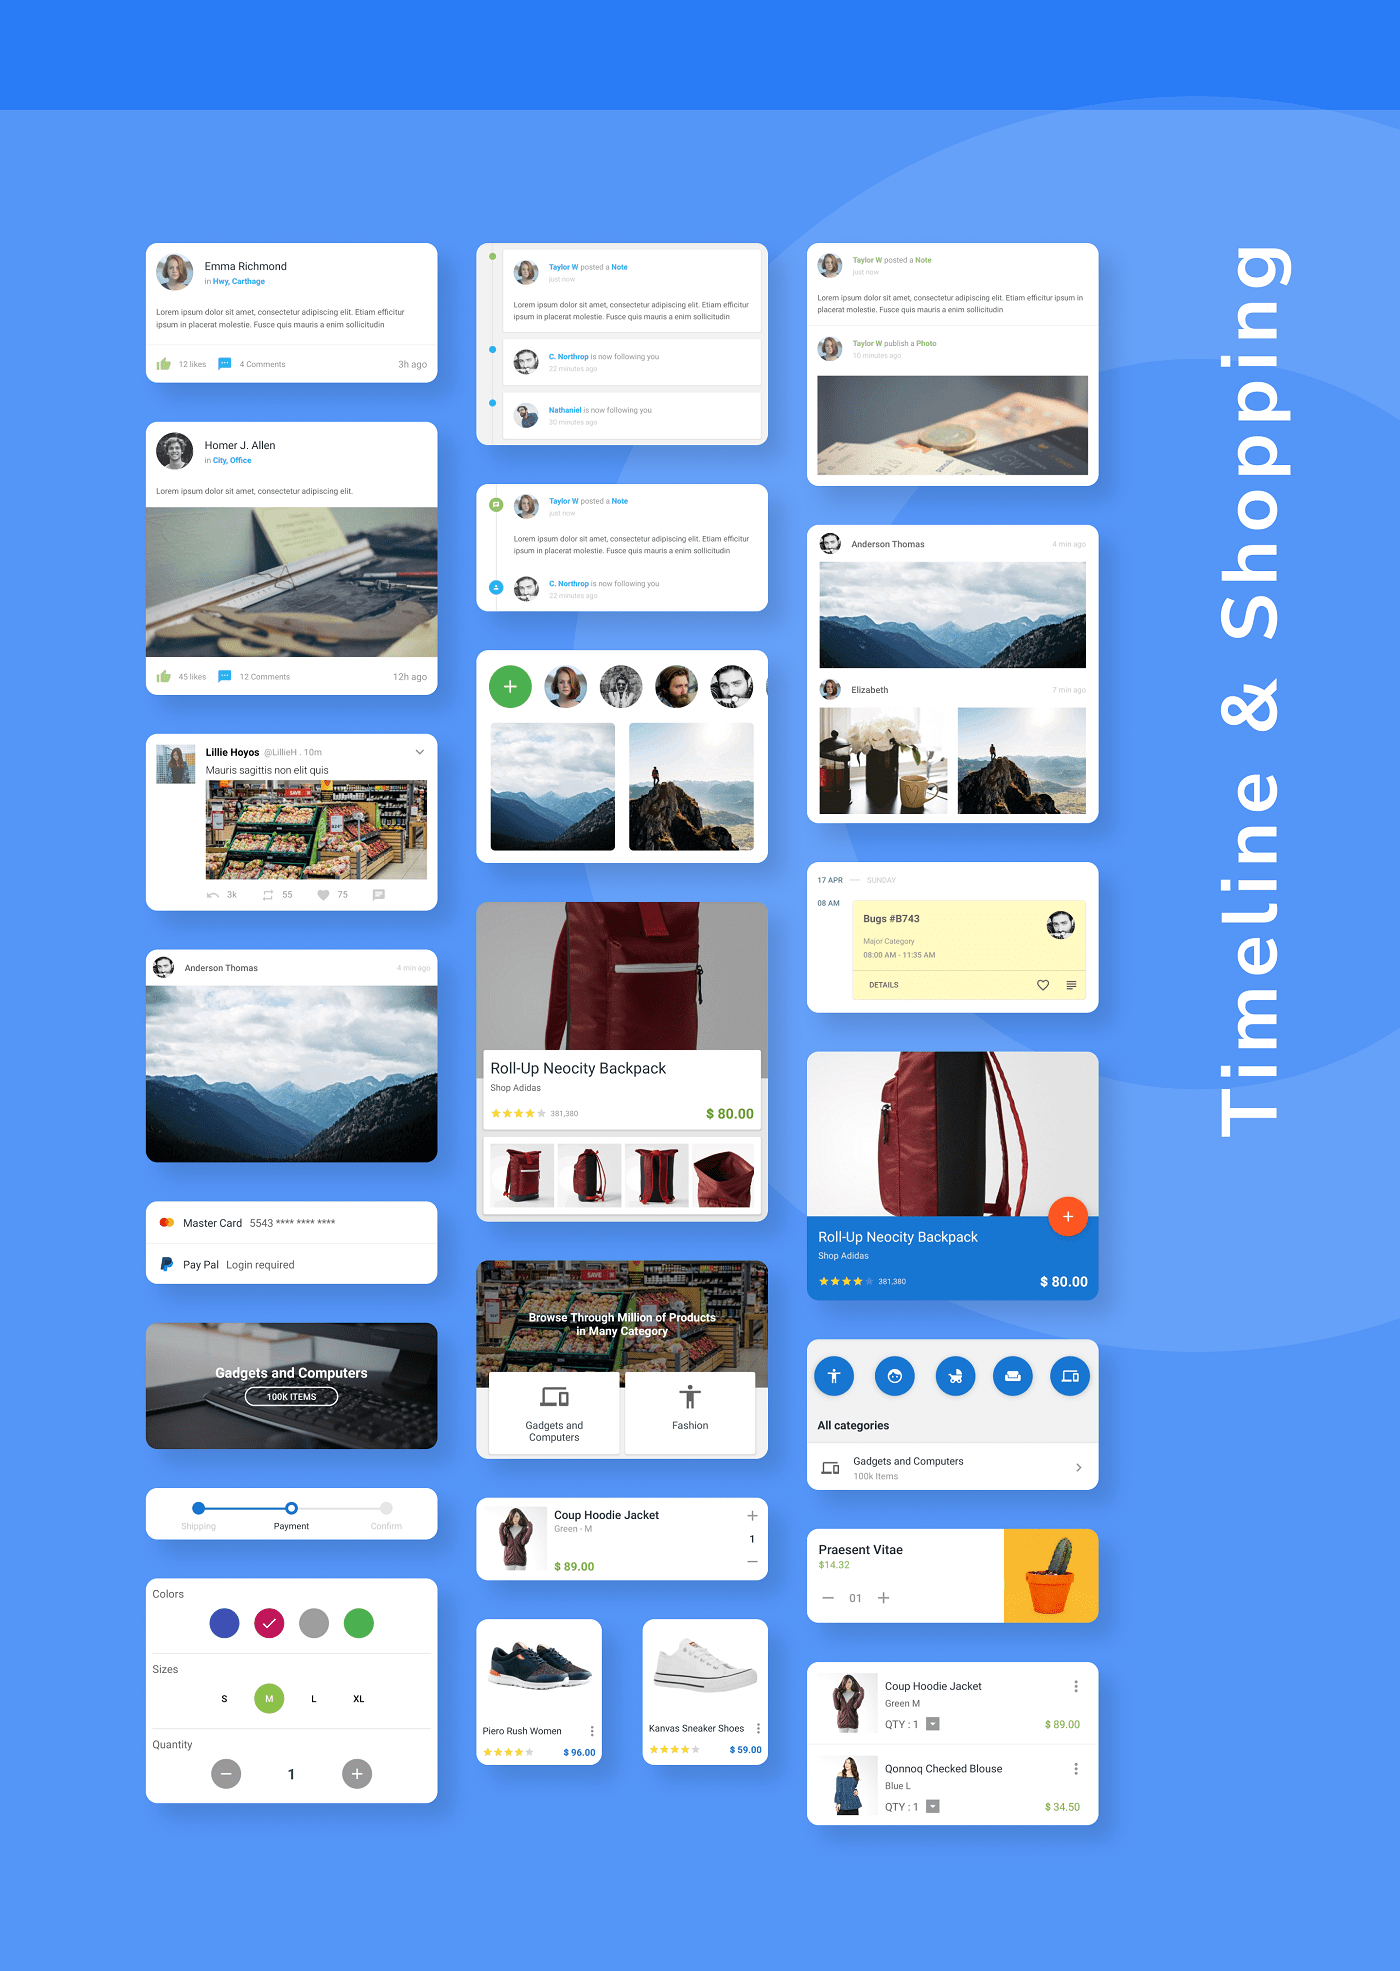 MaterialX - Android Material Design UI Components 2.7 - 27